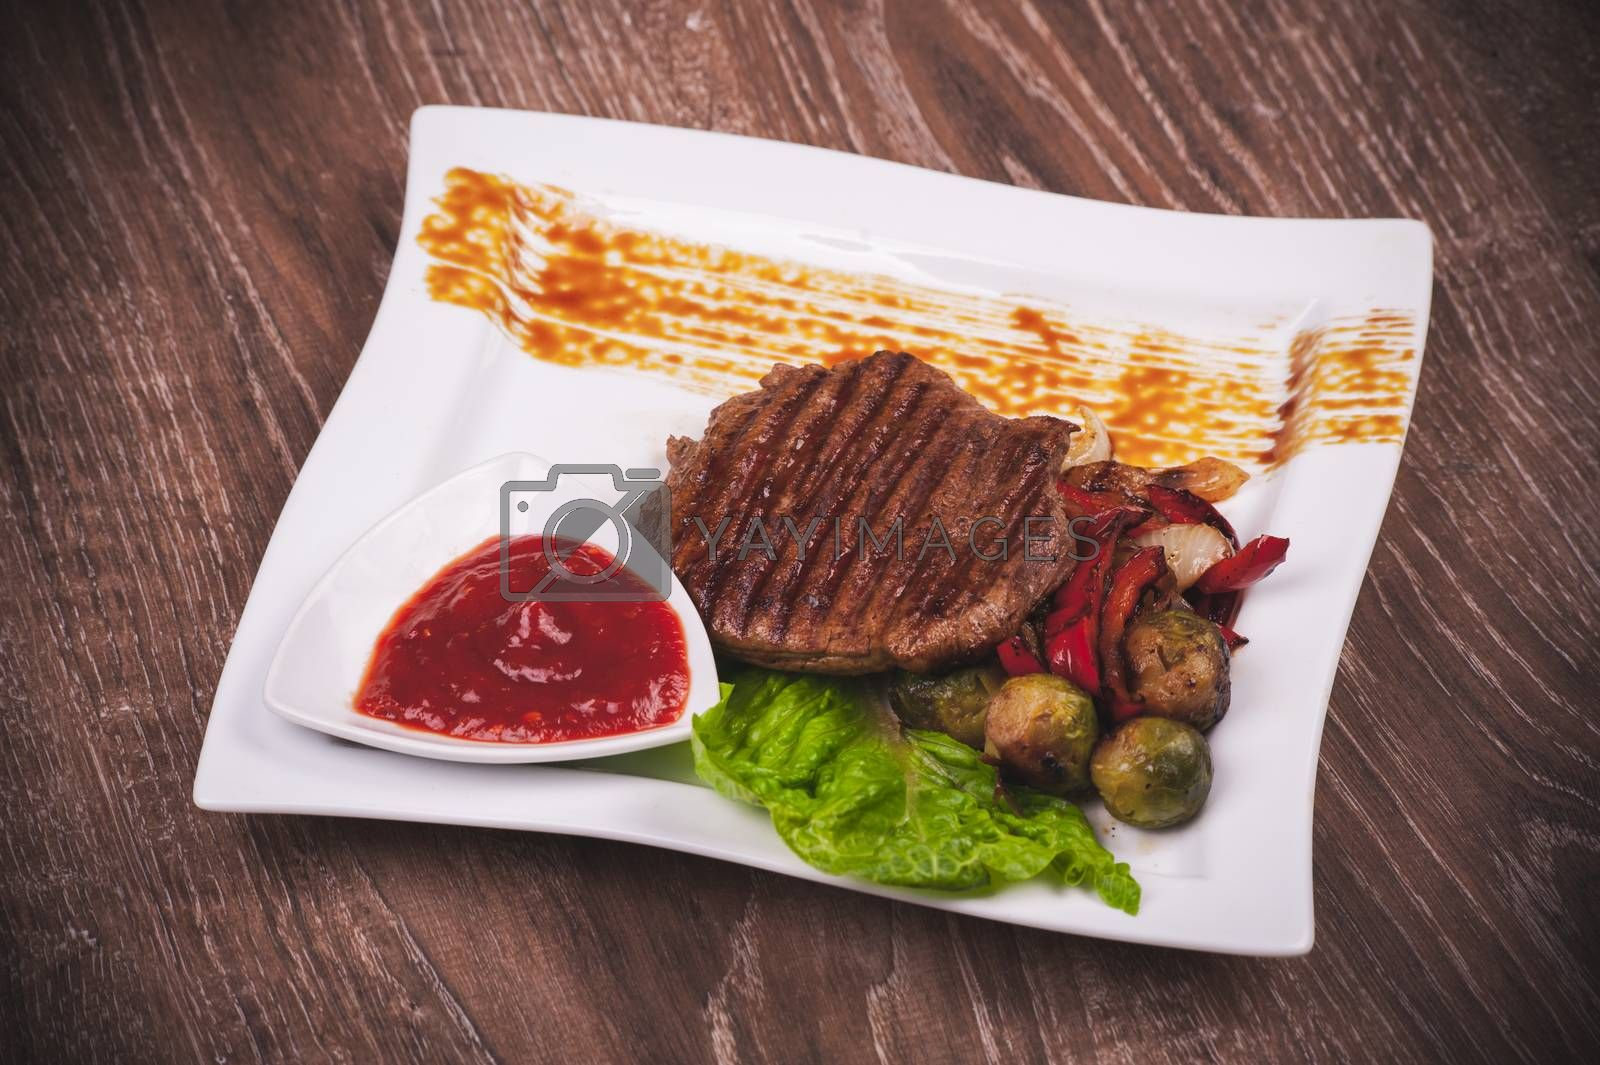 Grilled fillet of beef with vegetables on white plate